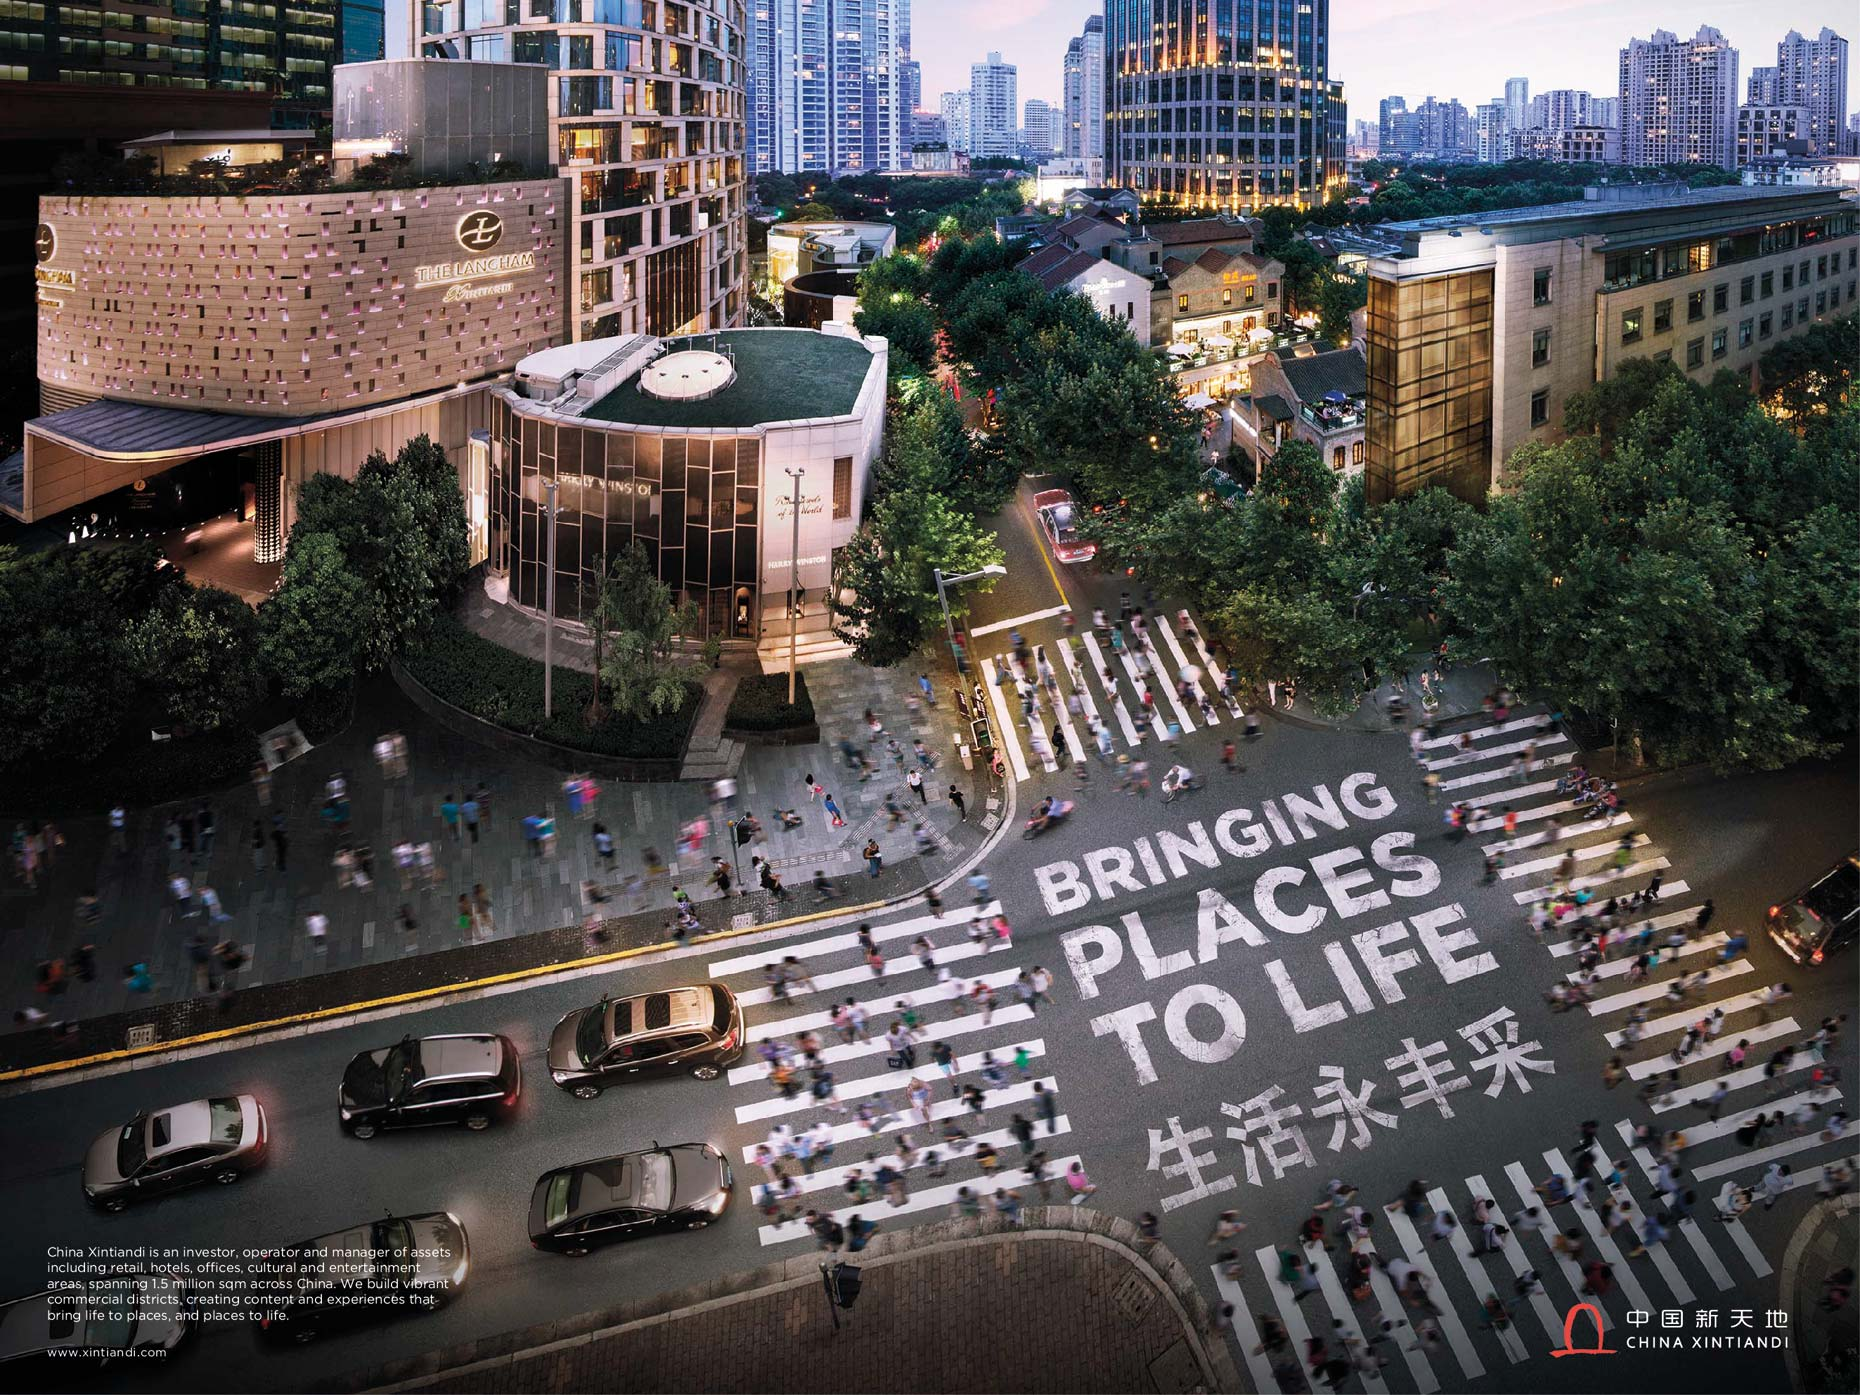 China Xintiandi Ad Campaign | China Xintiandi | Shanghai, China | Stefen Chow